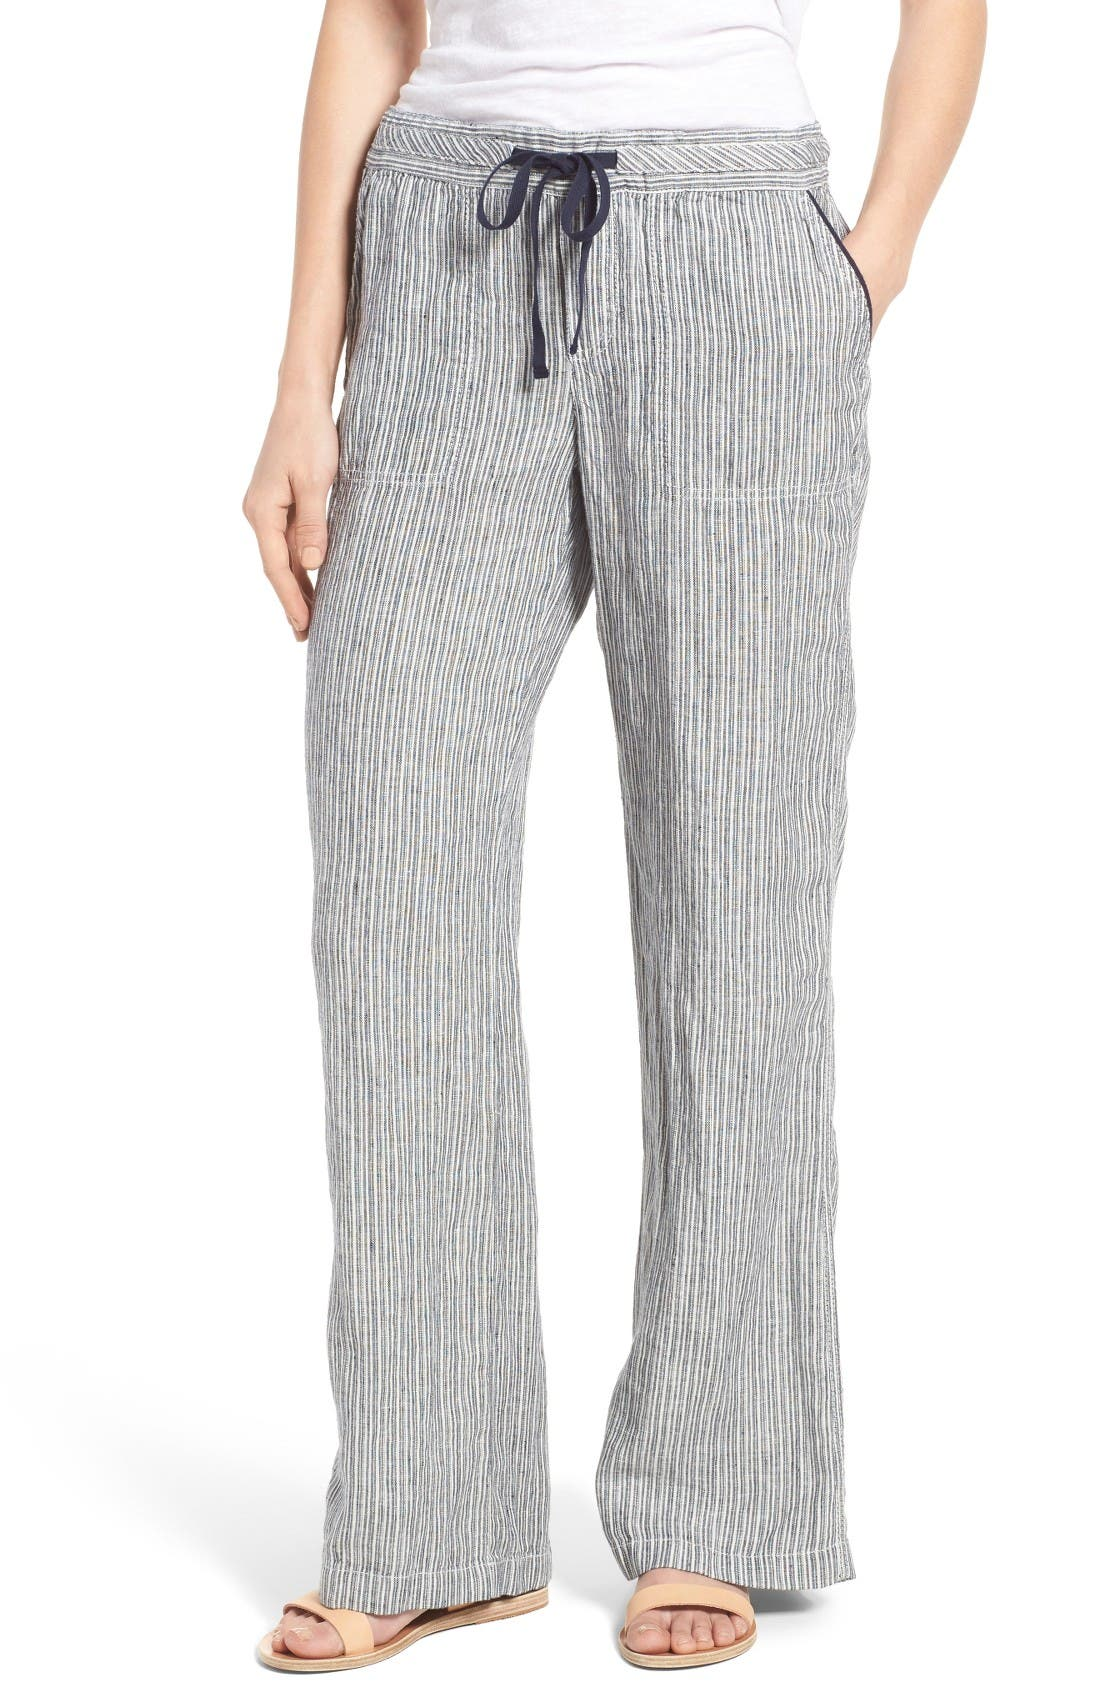 Drawstring Linen Pants,                             Main thumbnail 1, color,                             Ivory- Navy Seaside Stripe